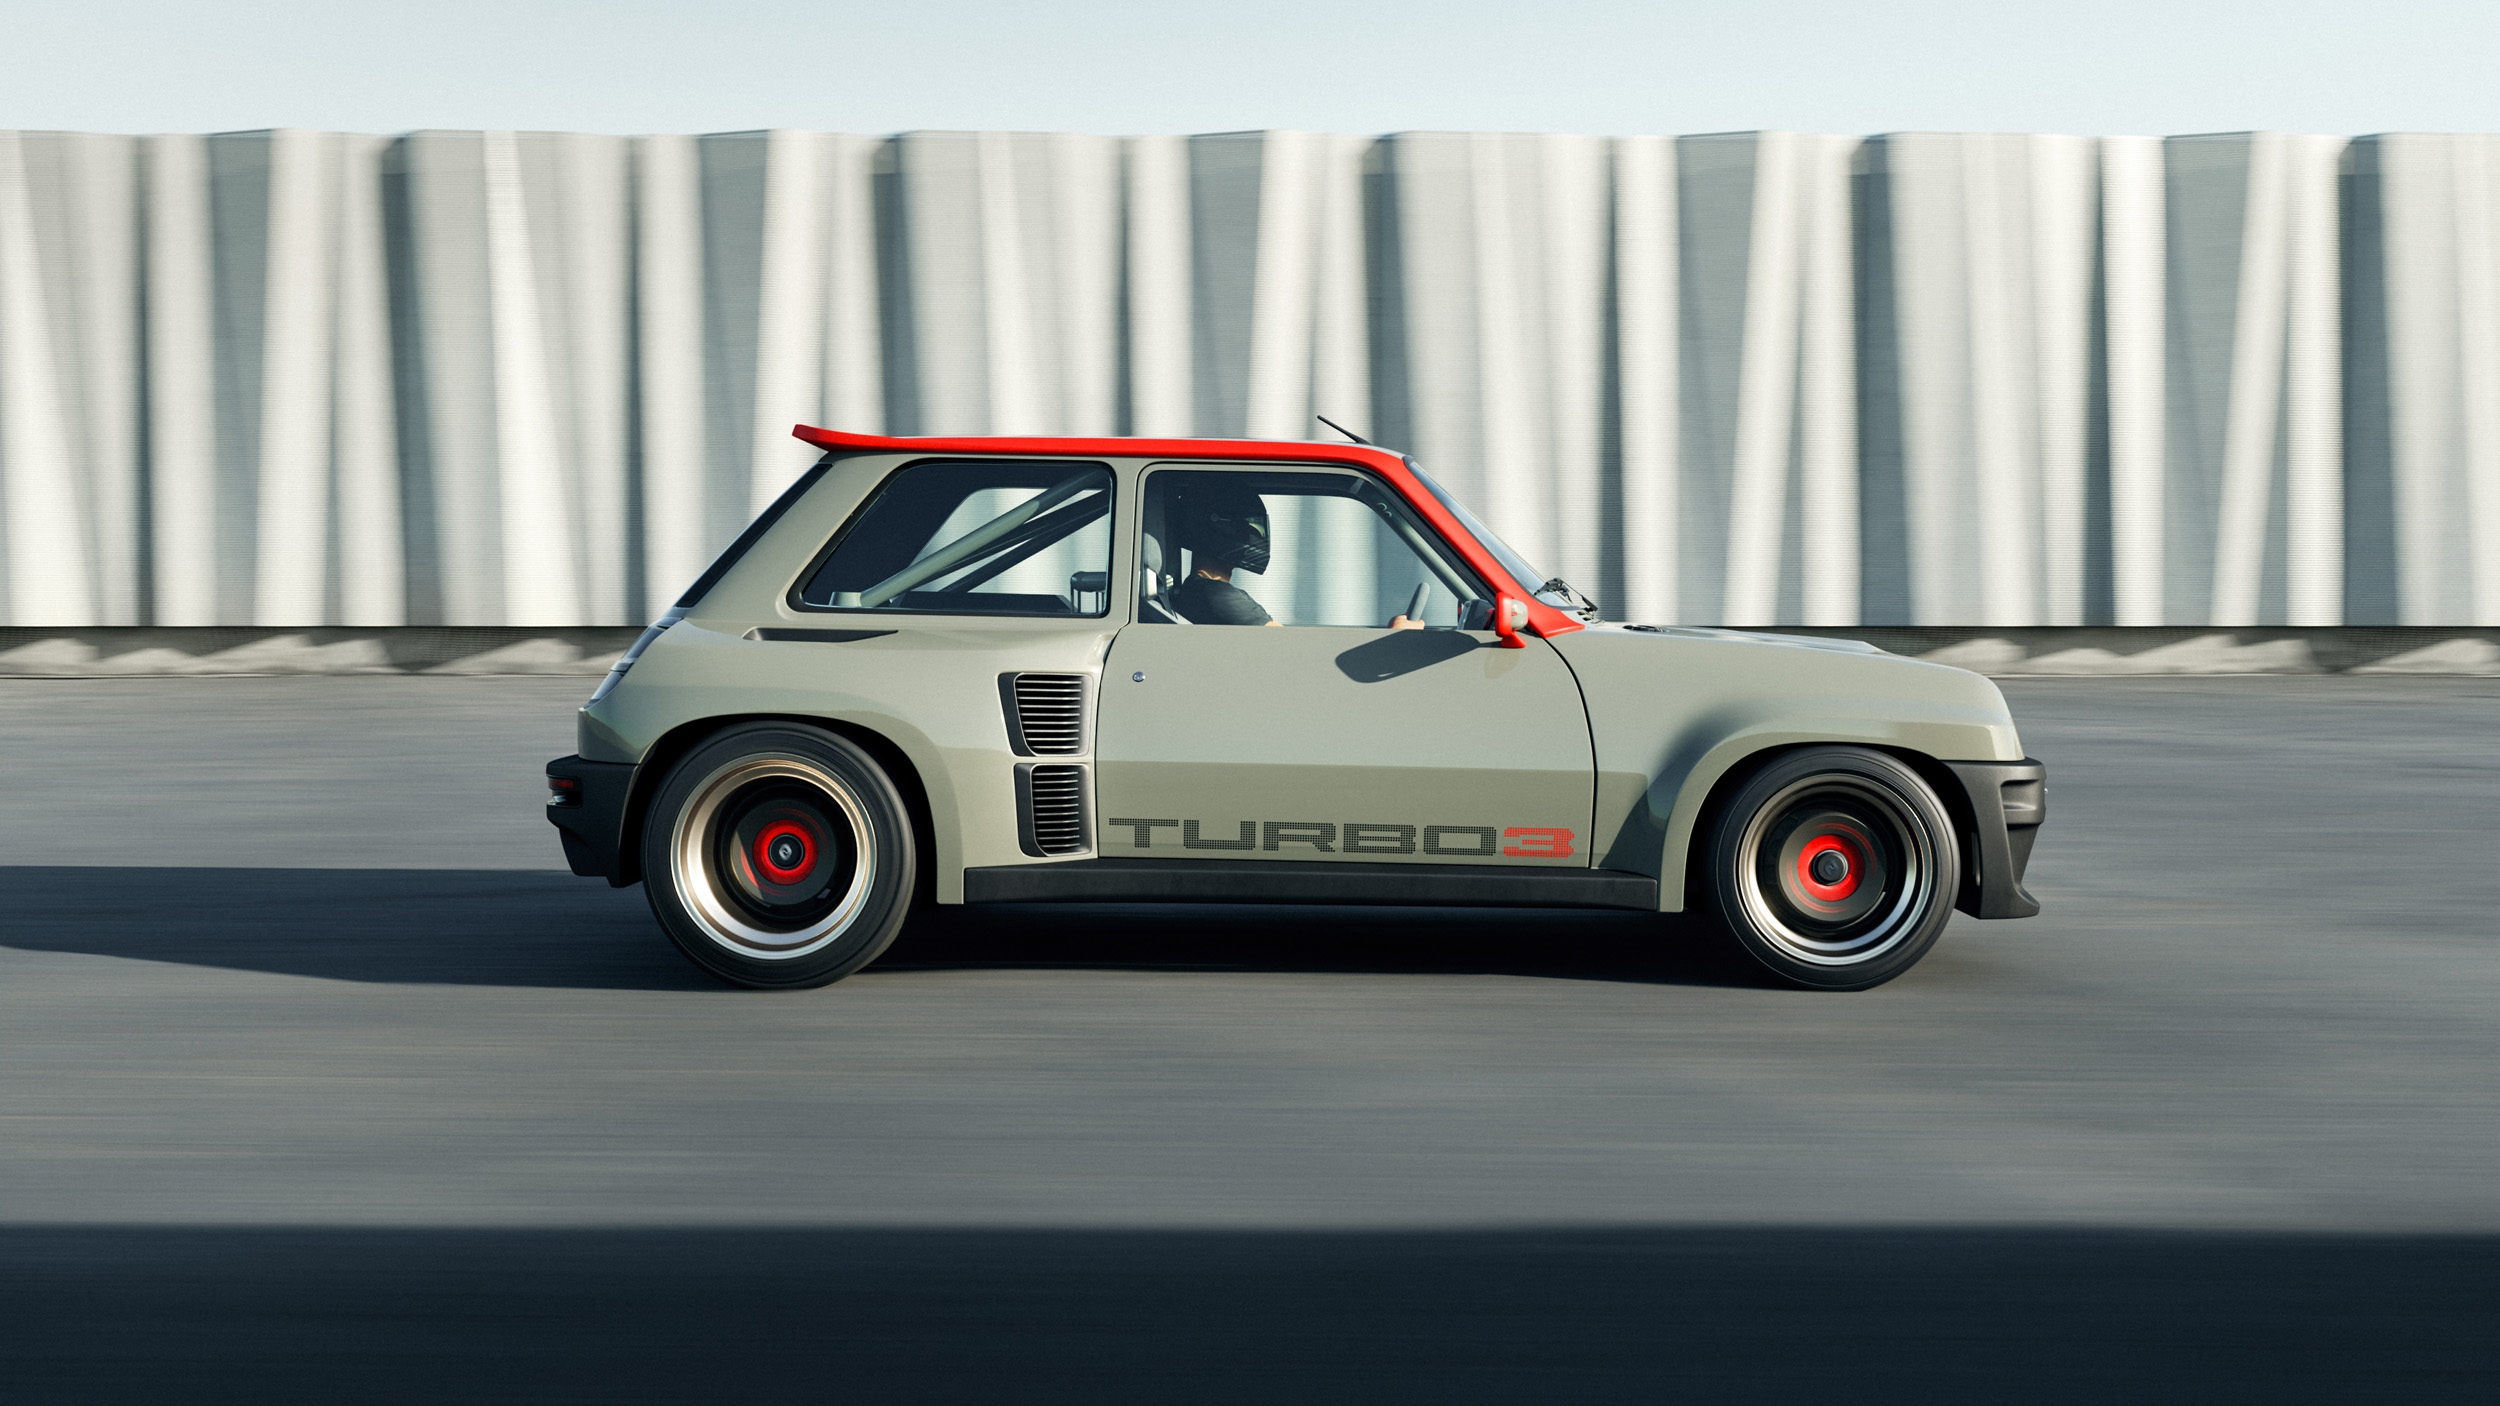 400-HP Turbo3 Is a 2021 Pocket Rocket Restomod From the '80s - autoevolution